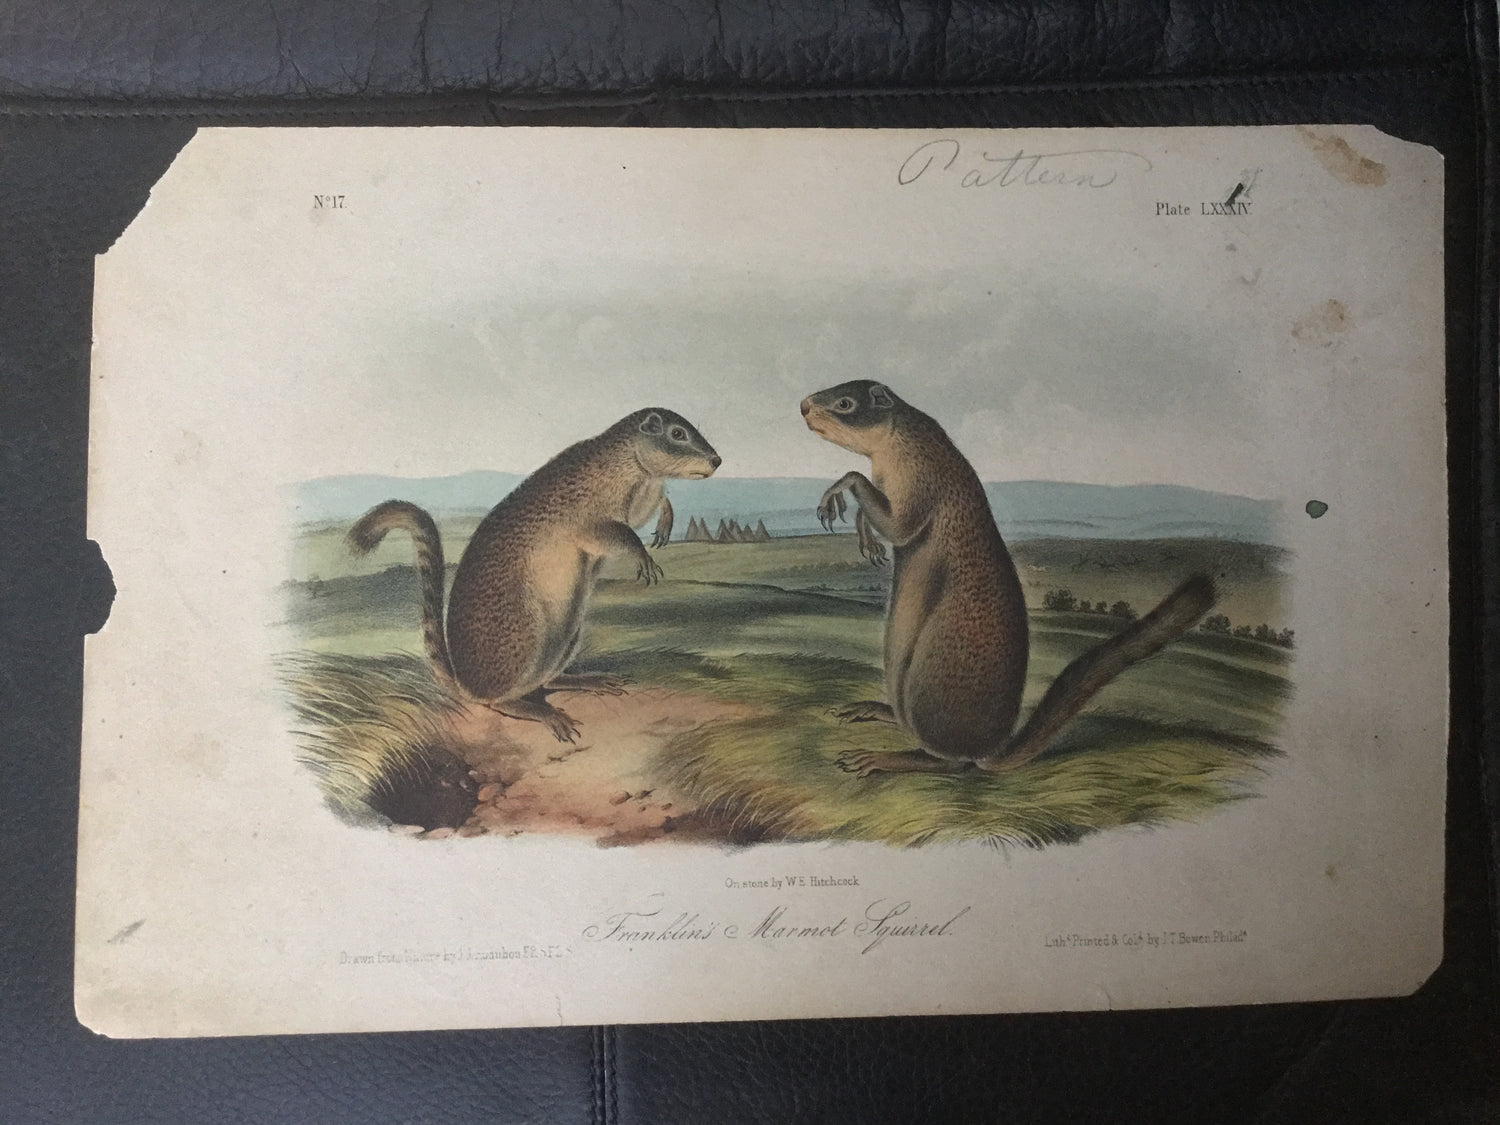 Lord-Hopkins Collection - Franklin's Marmot Squirrel - Pattern print